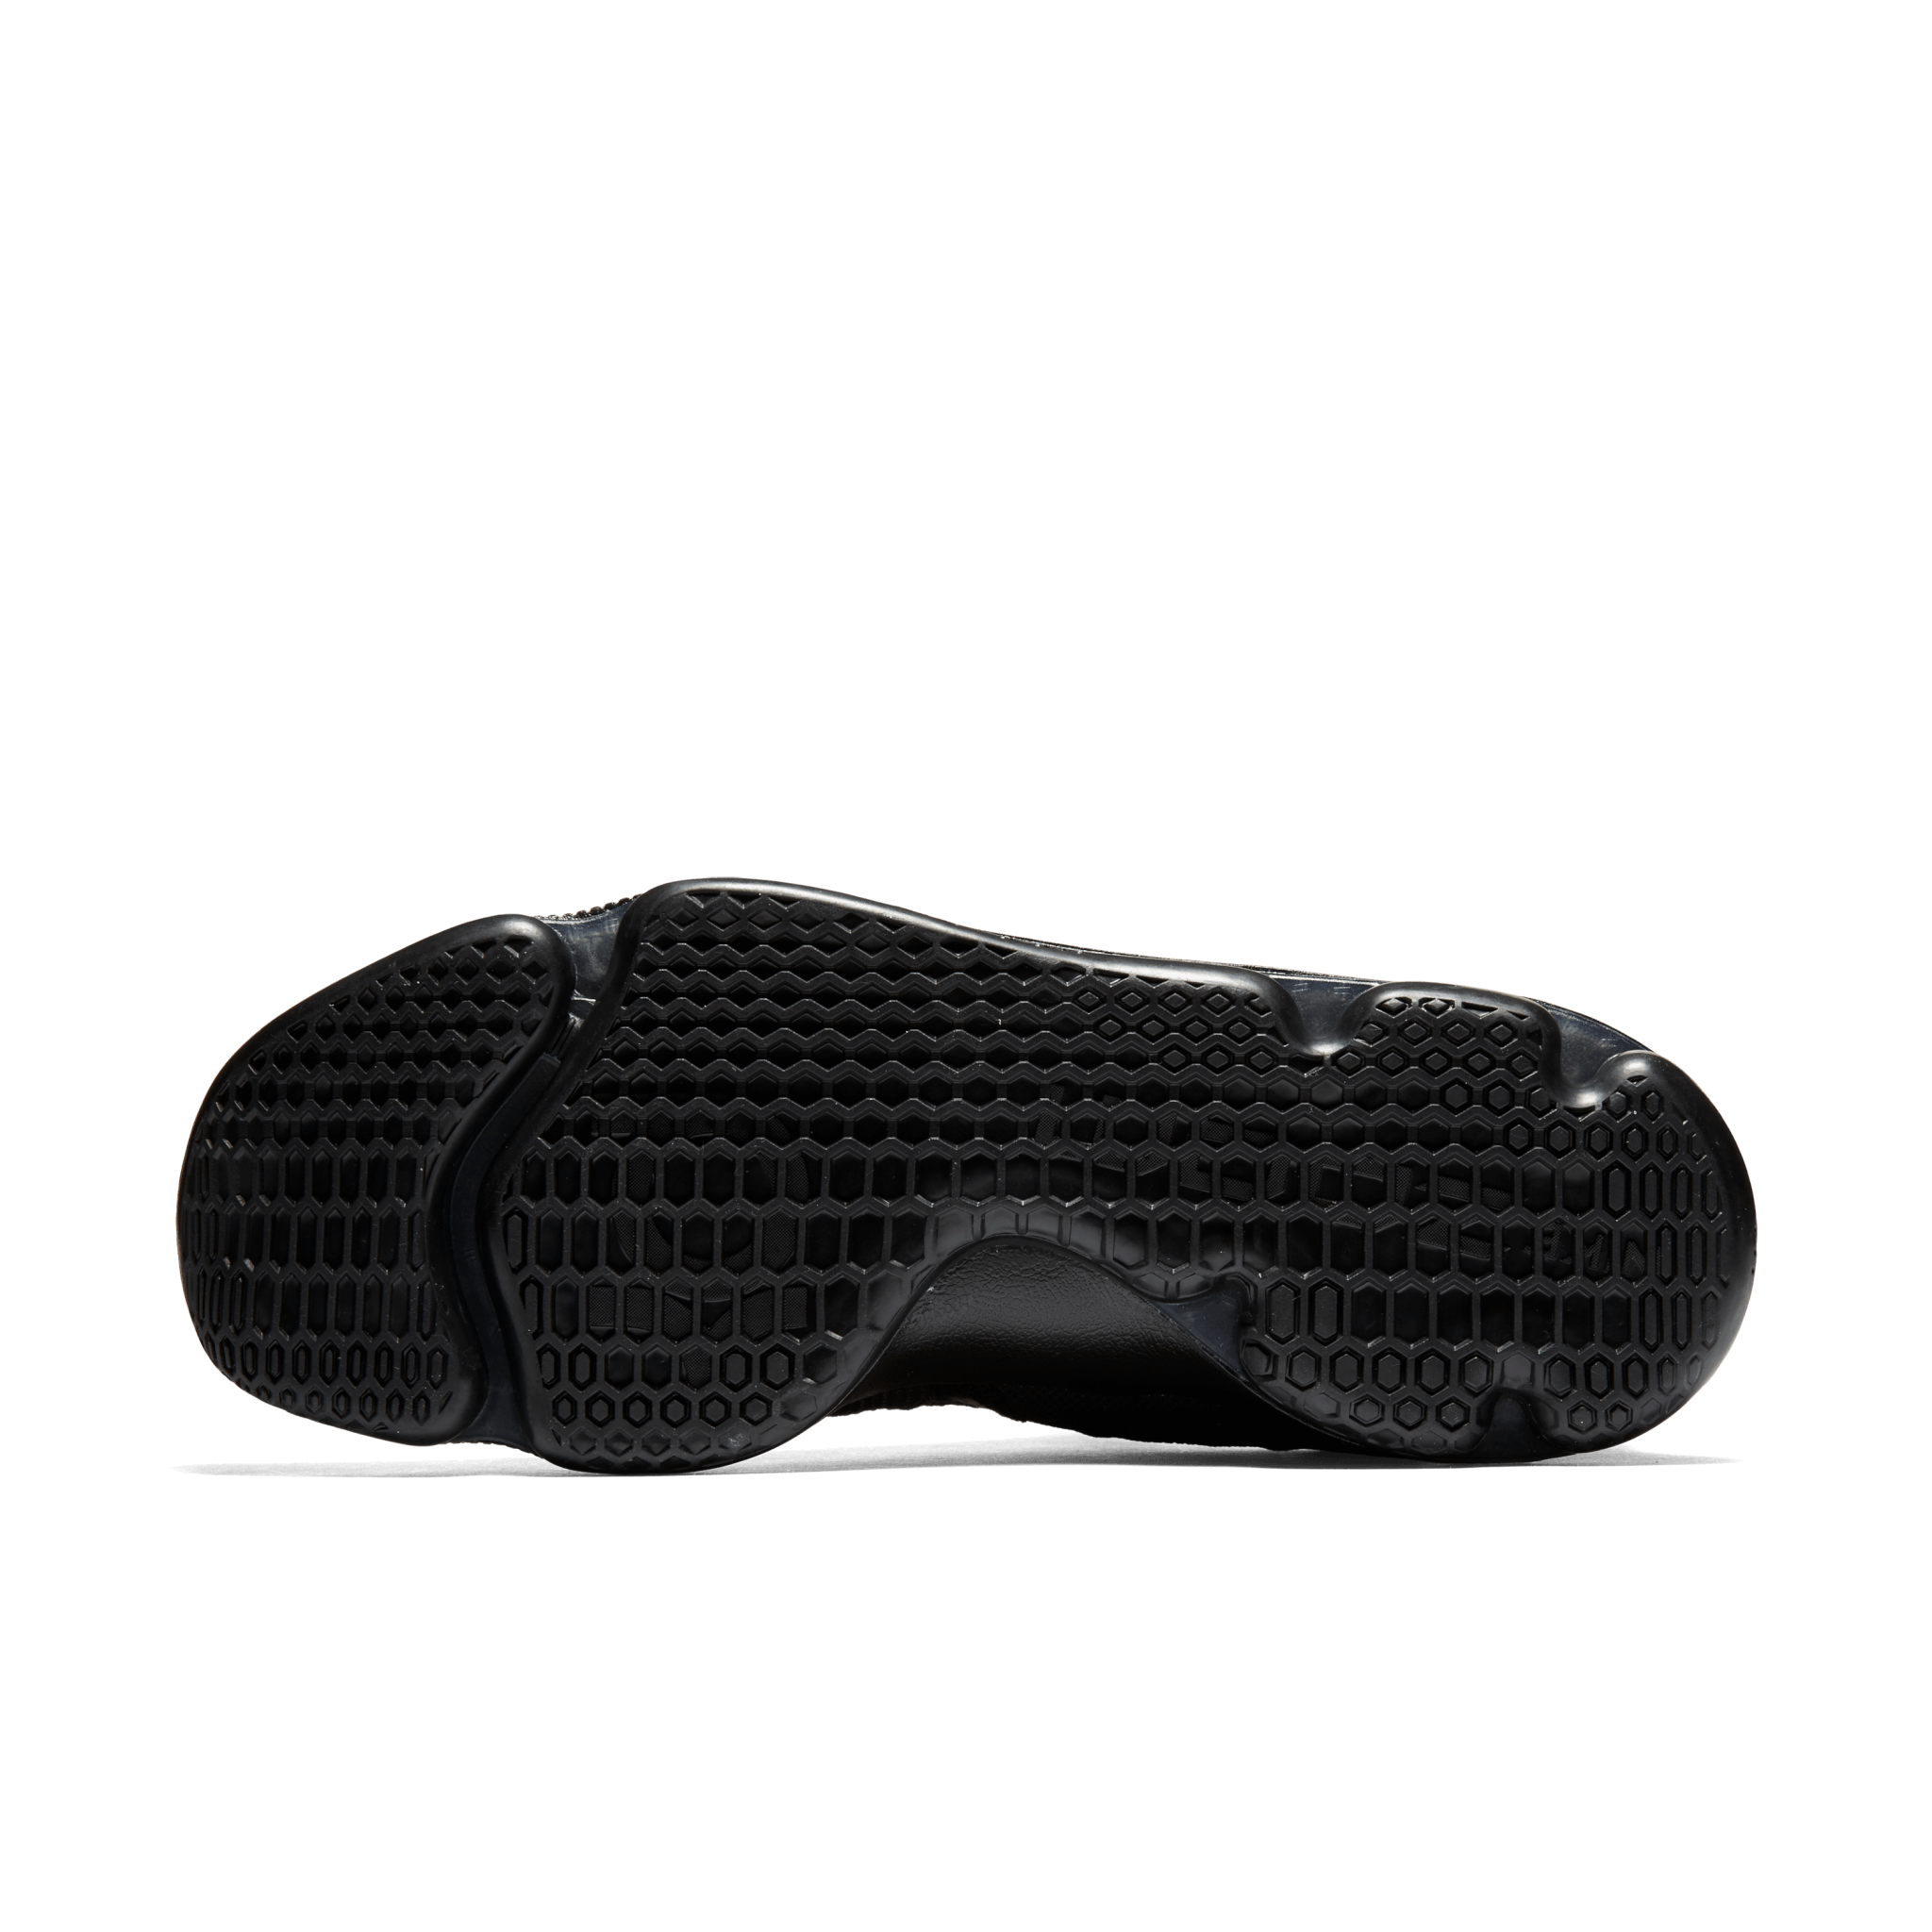 e9f7a34f50c943 Nike Zoom KD 9 Performance Review